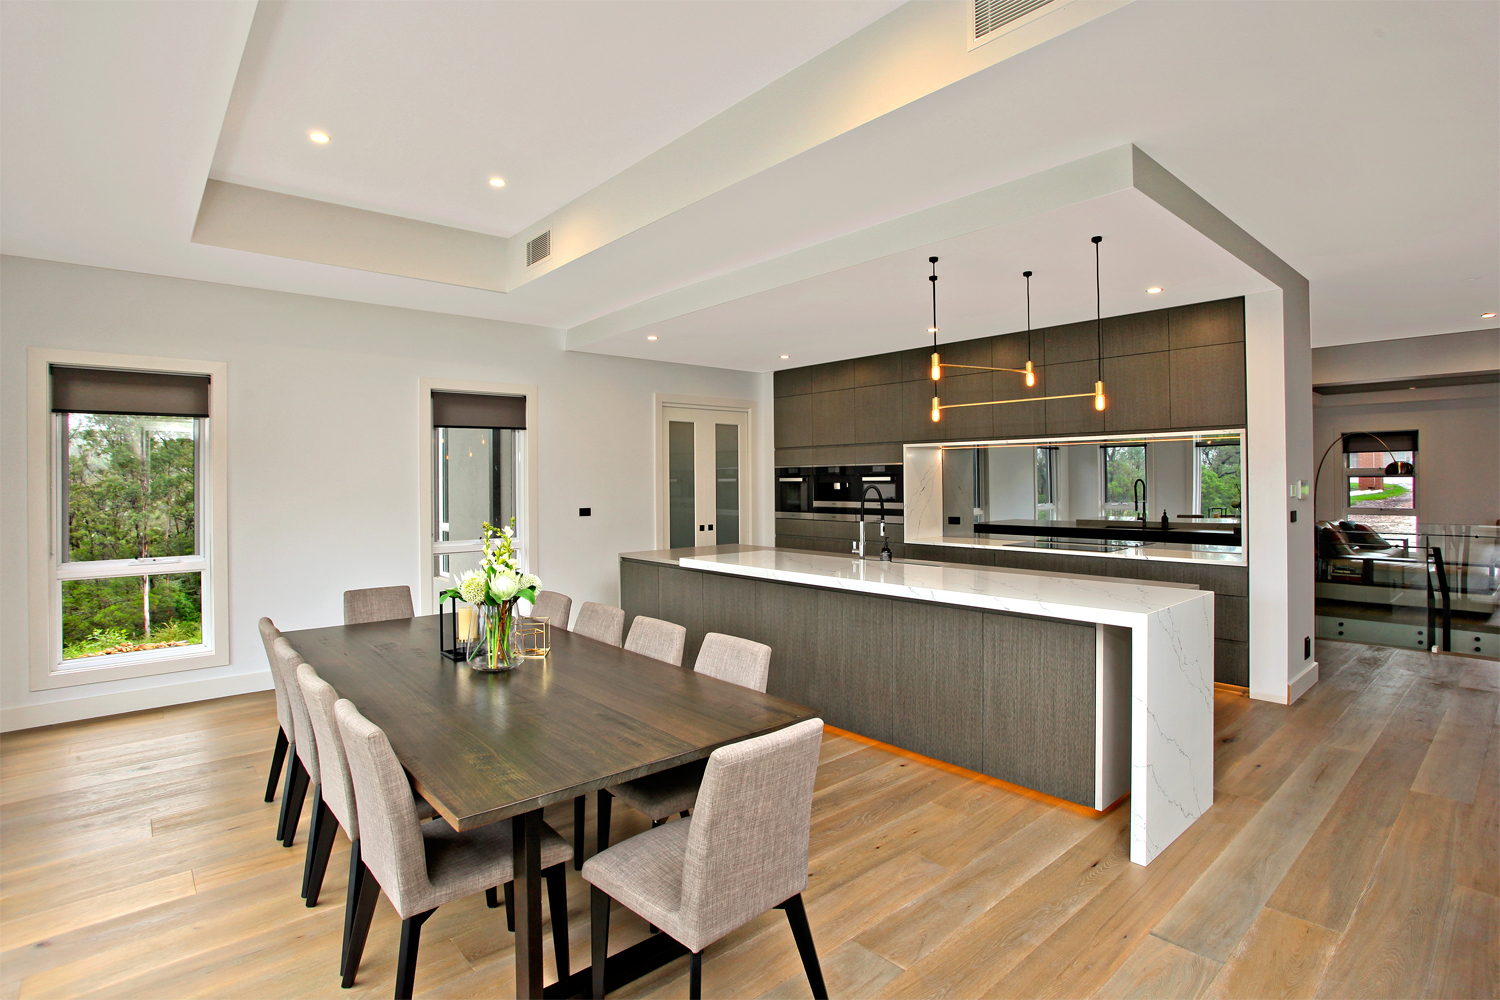 'One of a kind': a custom family home - open plan dining and kitchen